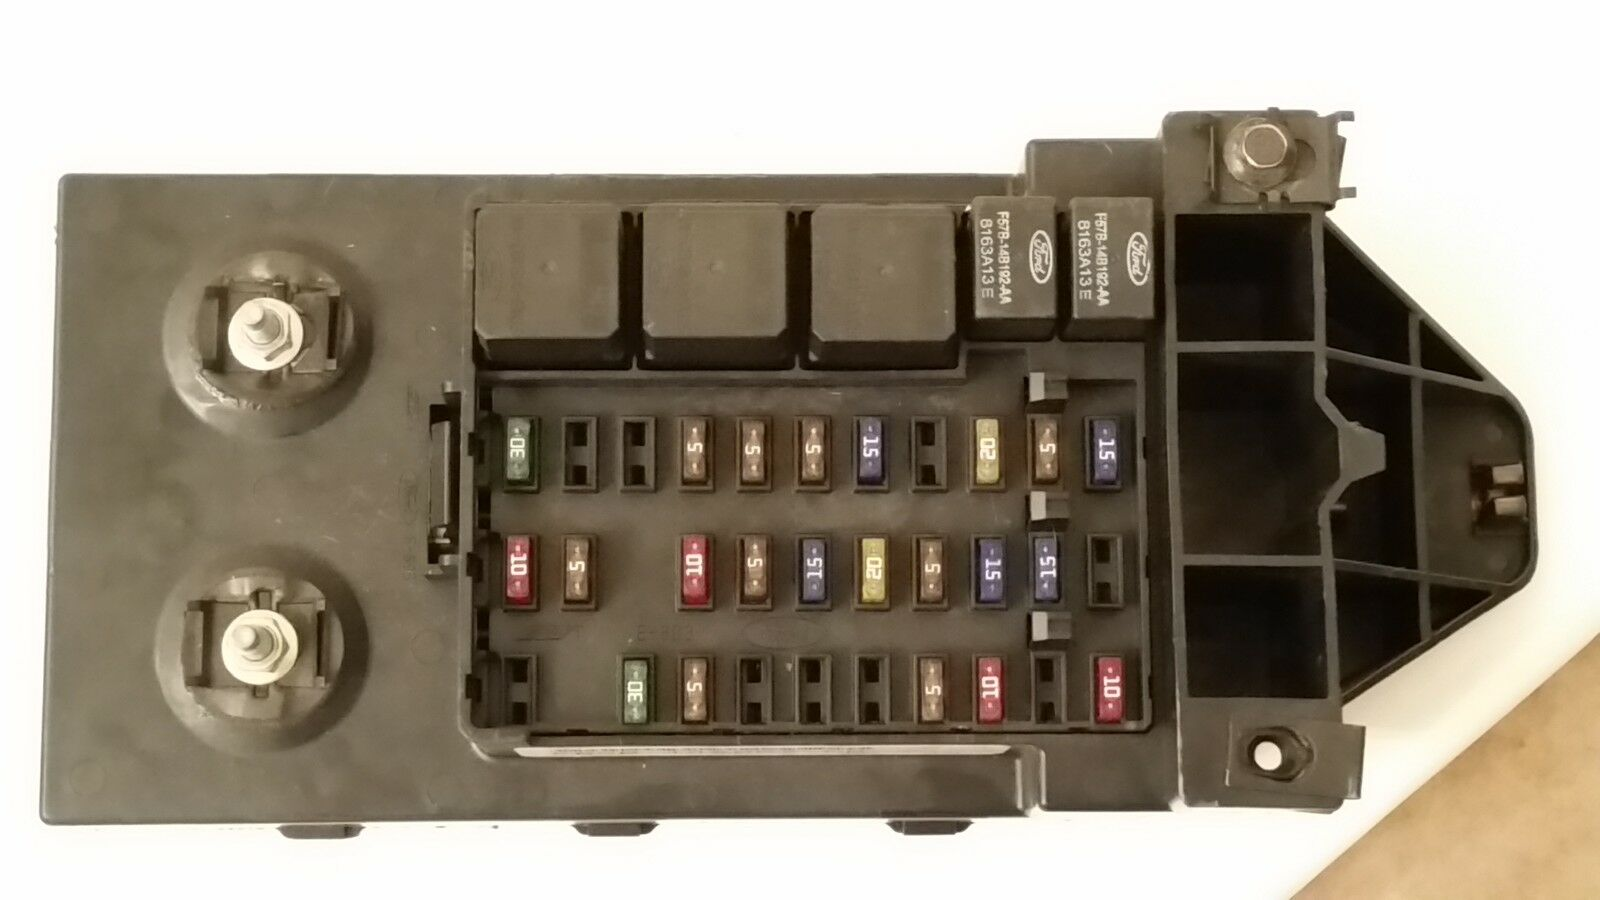 2000 Ford Excursion F250 F350 Super Duty Fuse Box Relay Panel Yc3t Diagram 14a067 Cb 1 Of 1free Shipping